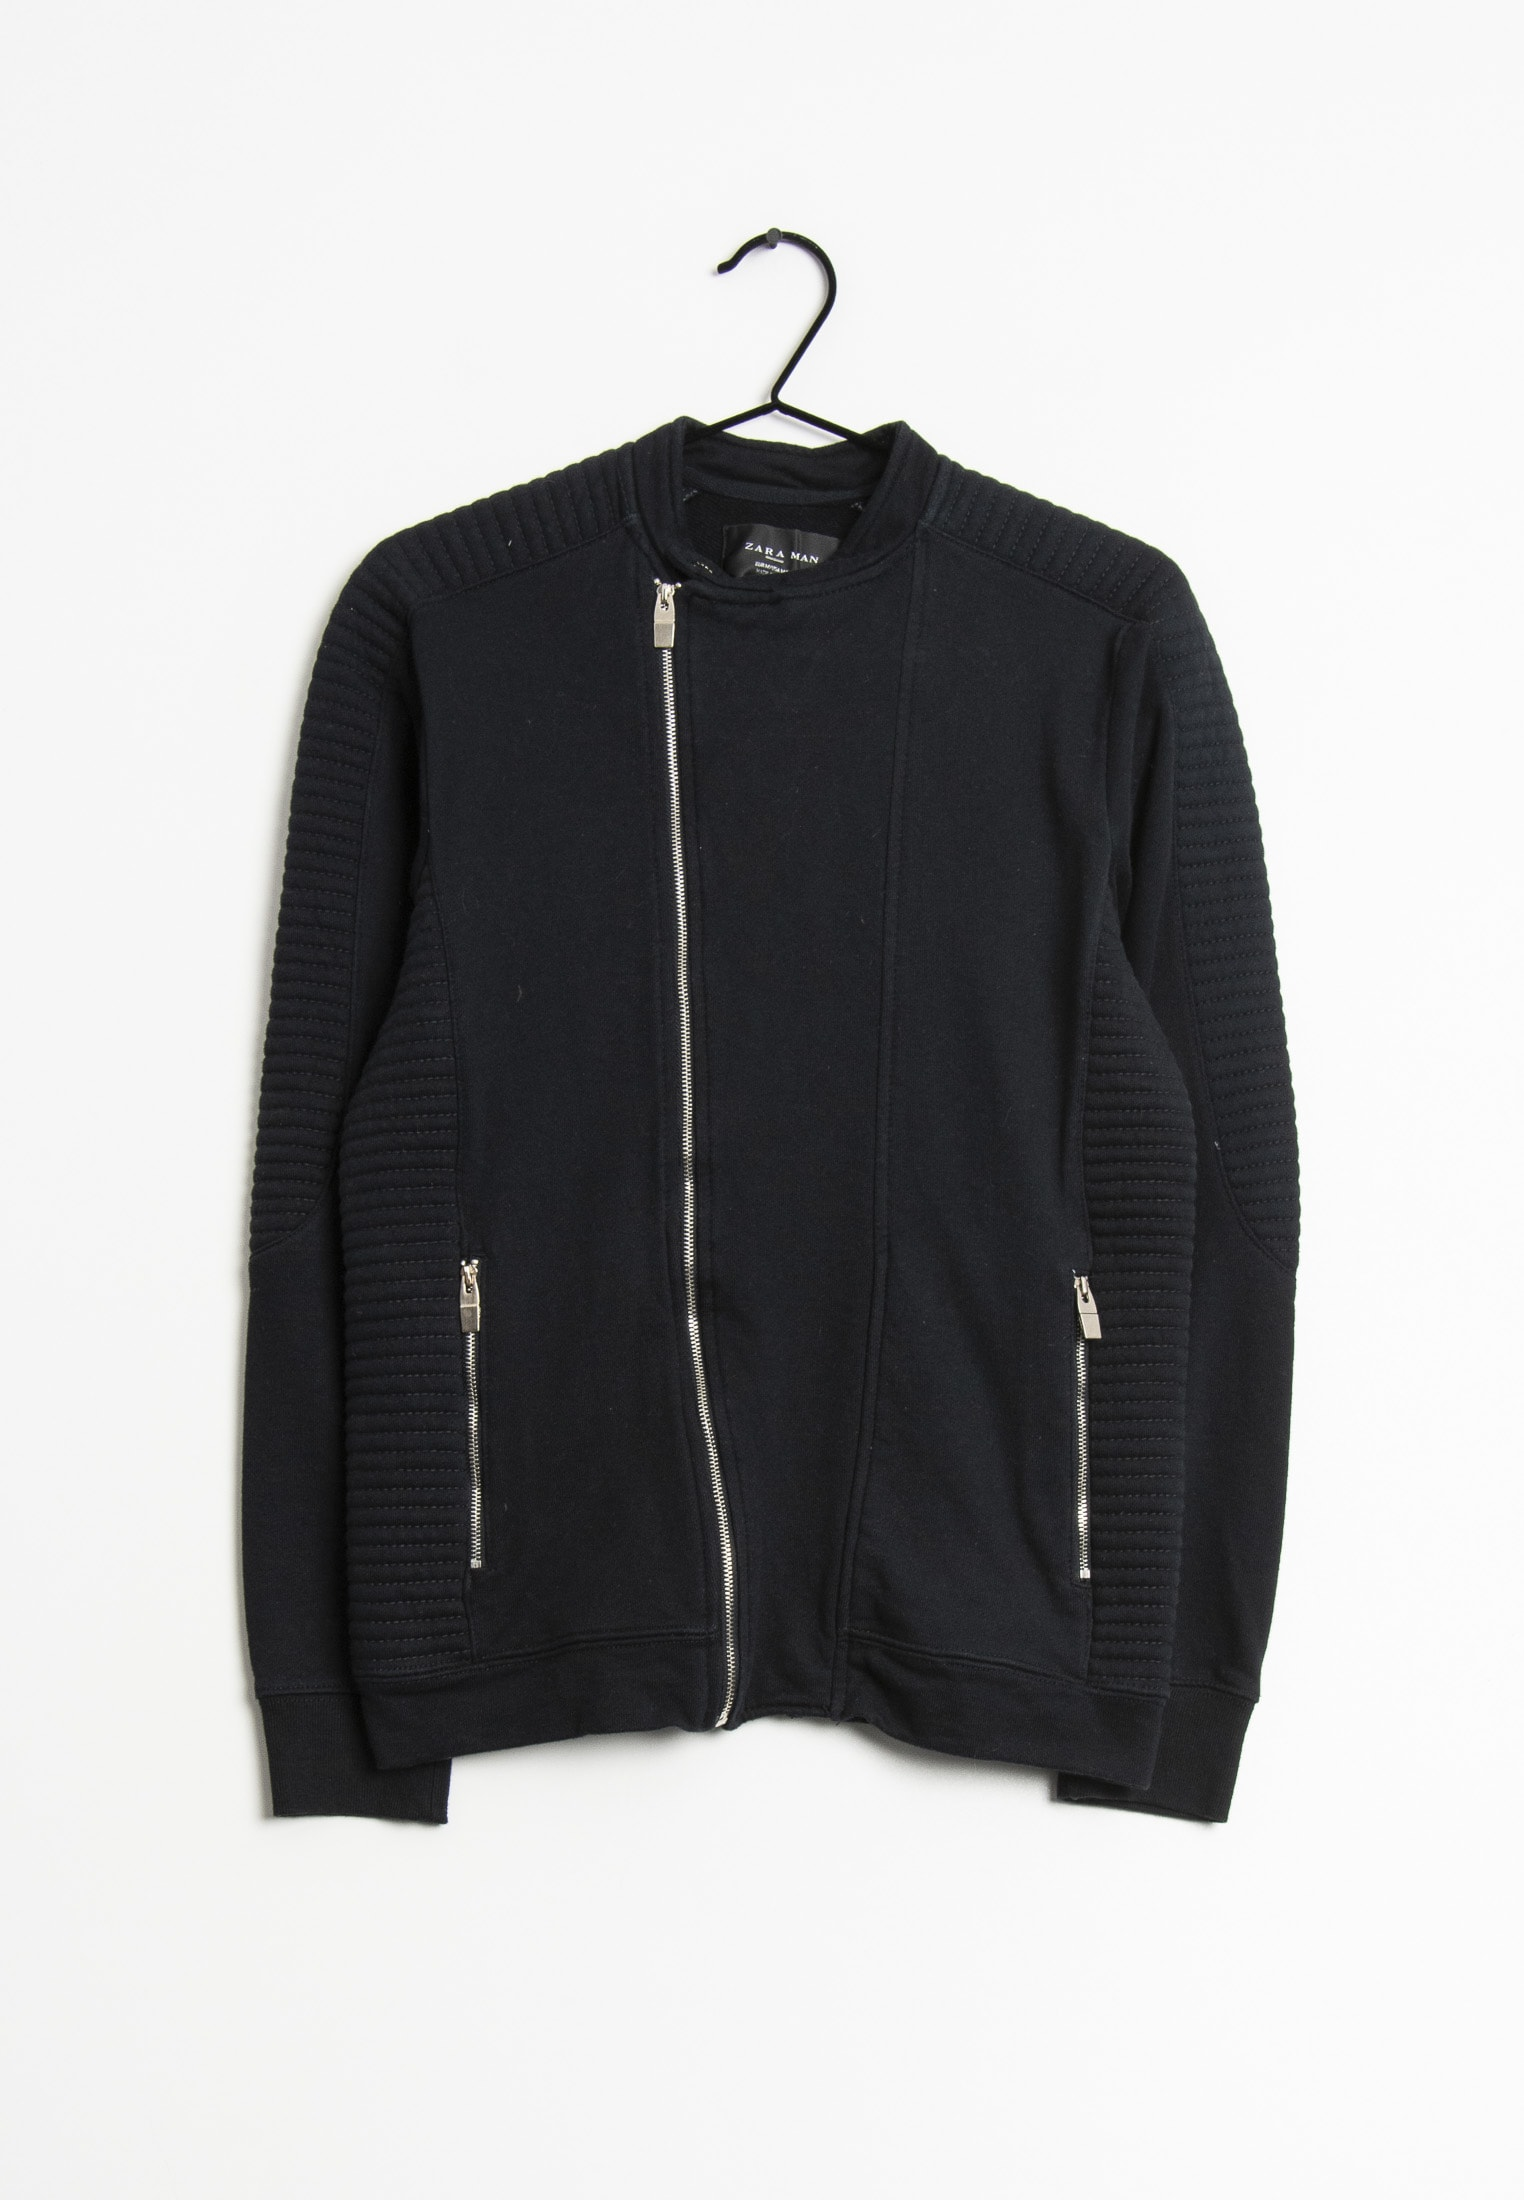 Zara Sweat / Fleece Blau Gr.M